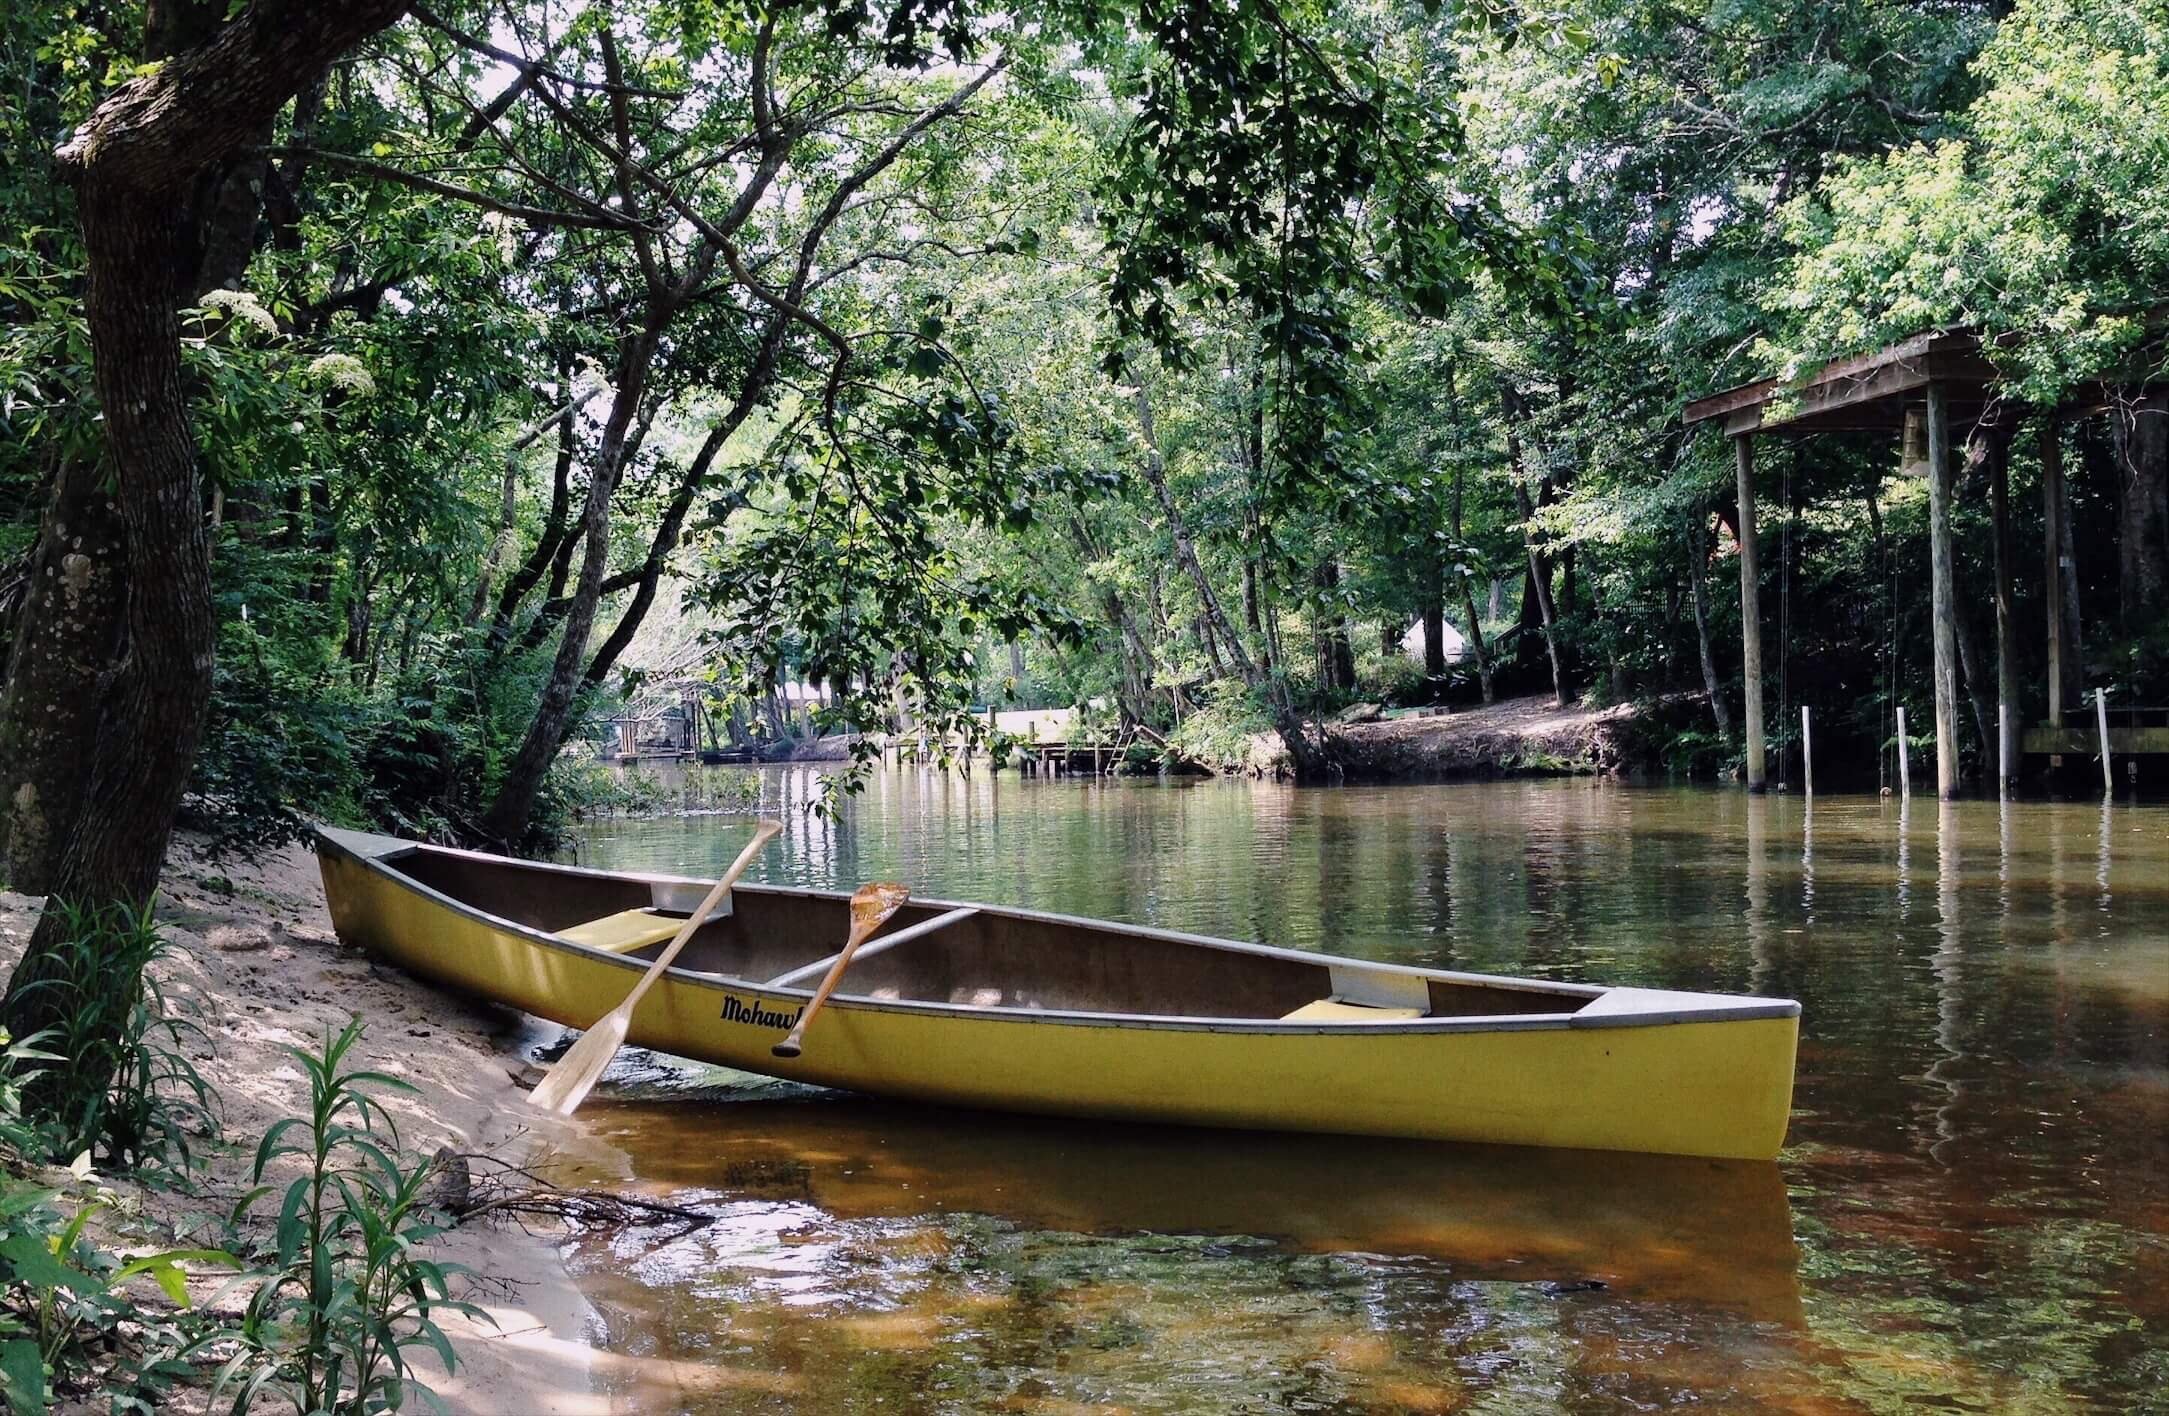 Canoe in Fairhope